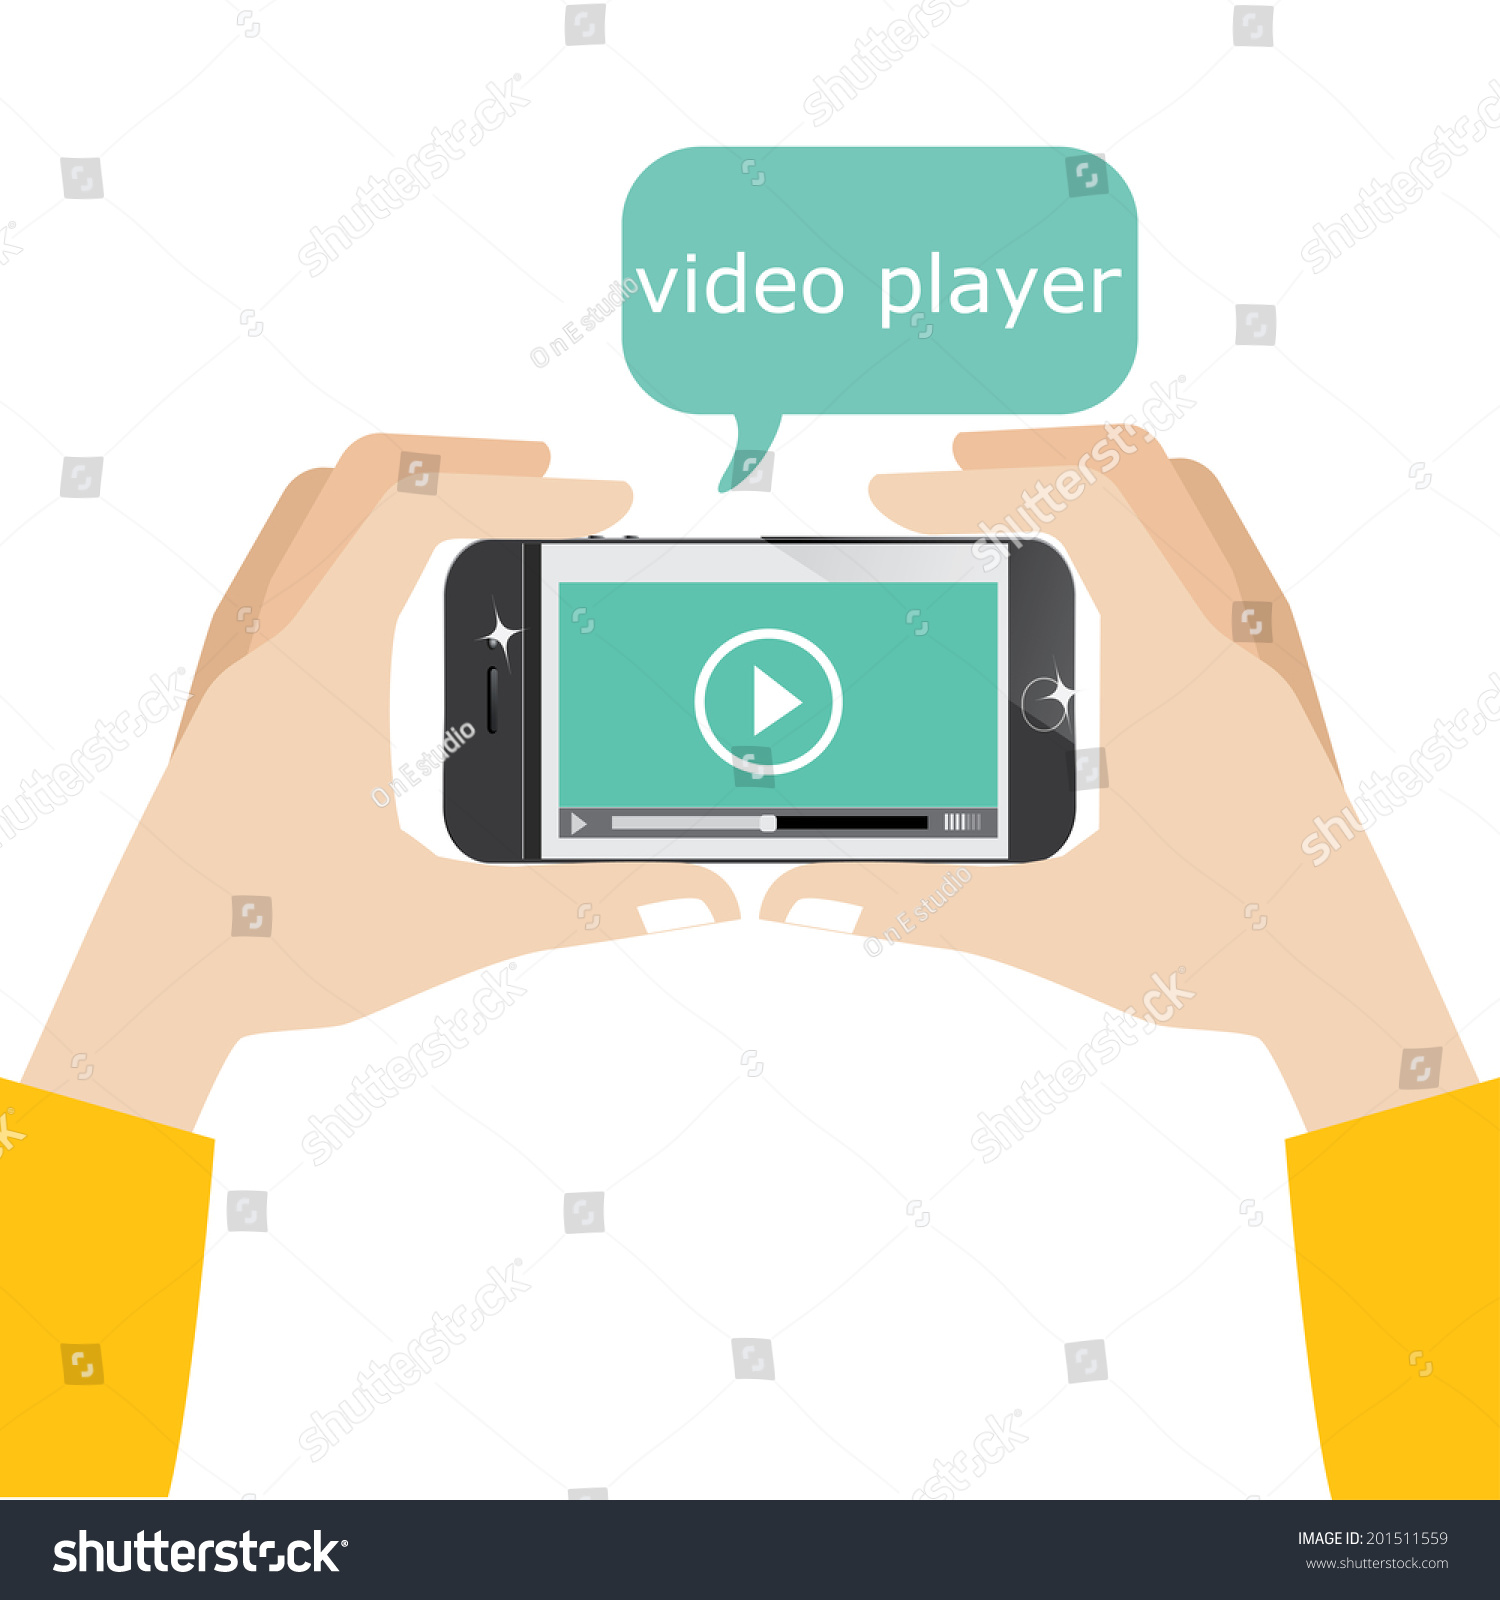 how to play video in mobile